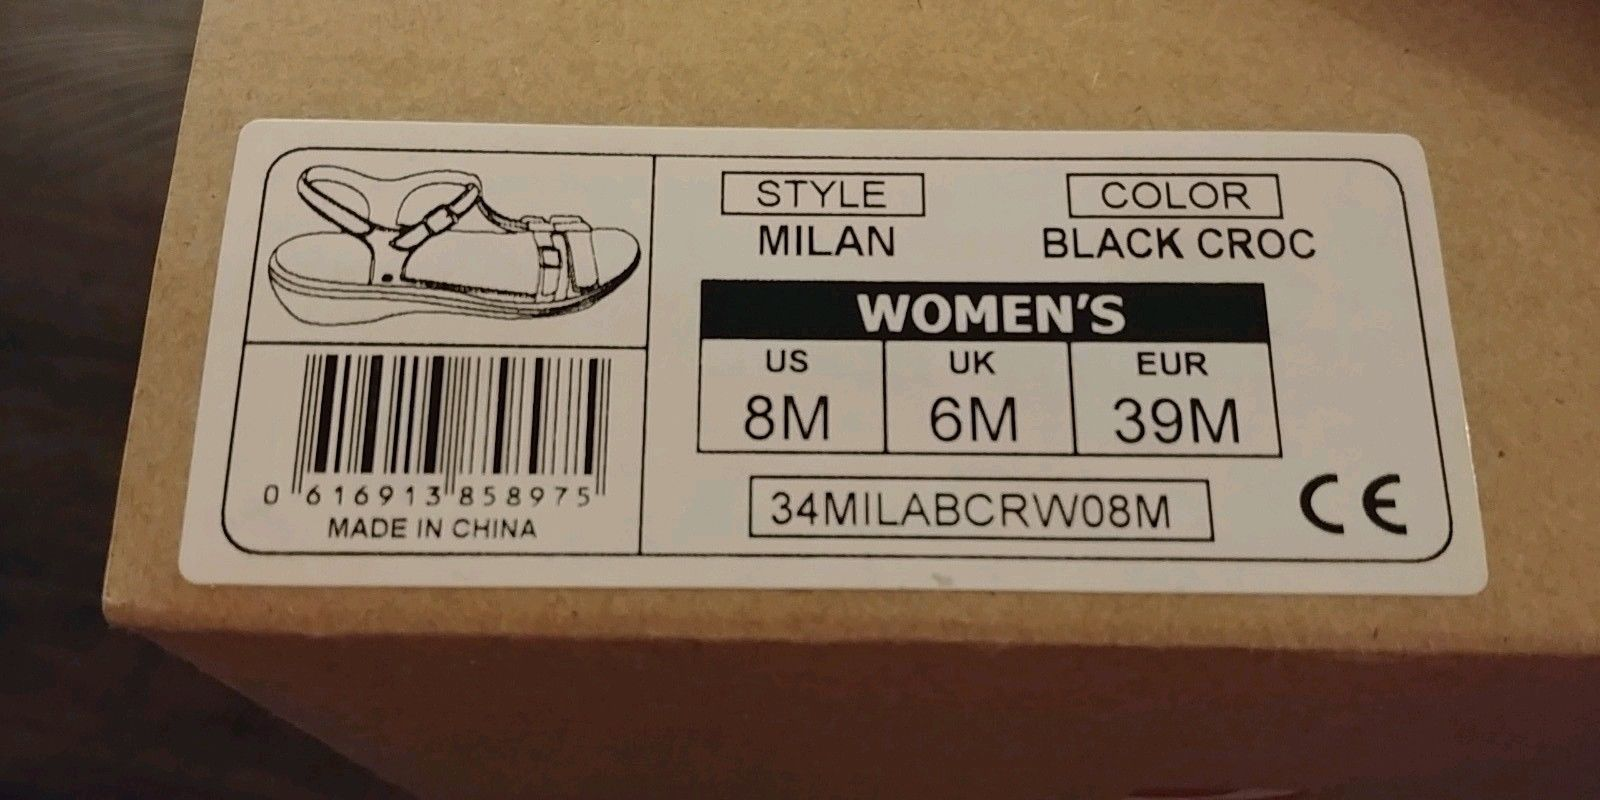 NEW Revere Milan Womens Black Croc Leather Comfort Sandals Shoes Orthotics 8M 39